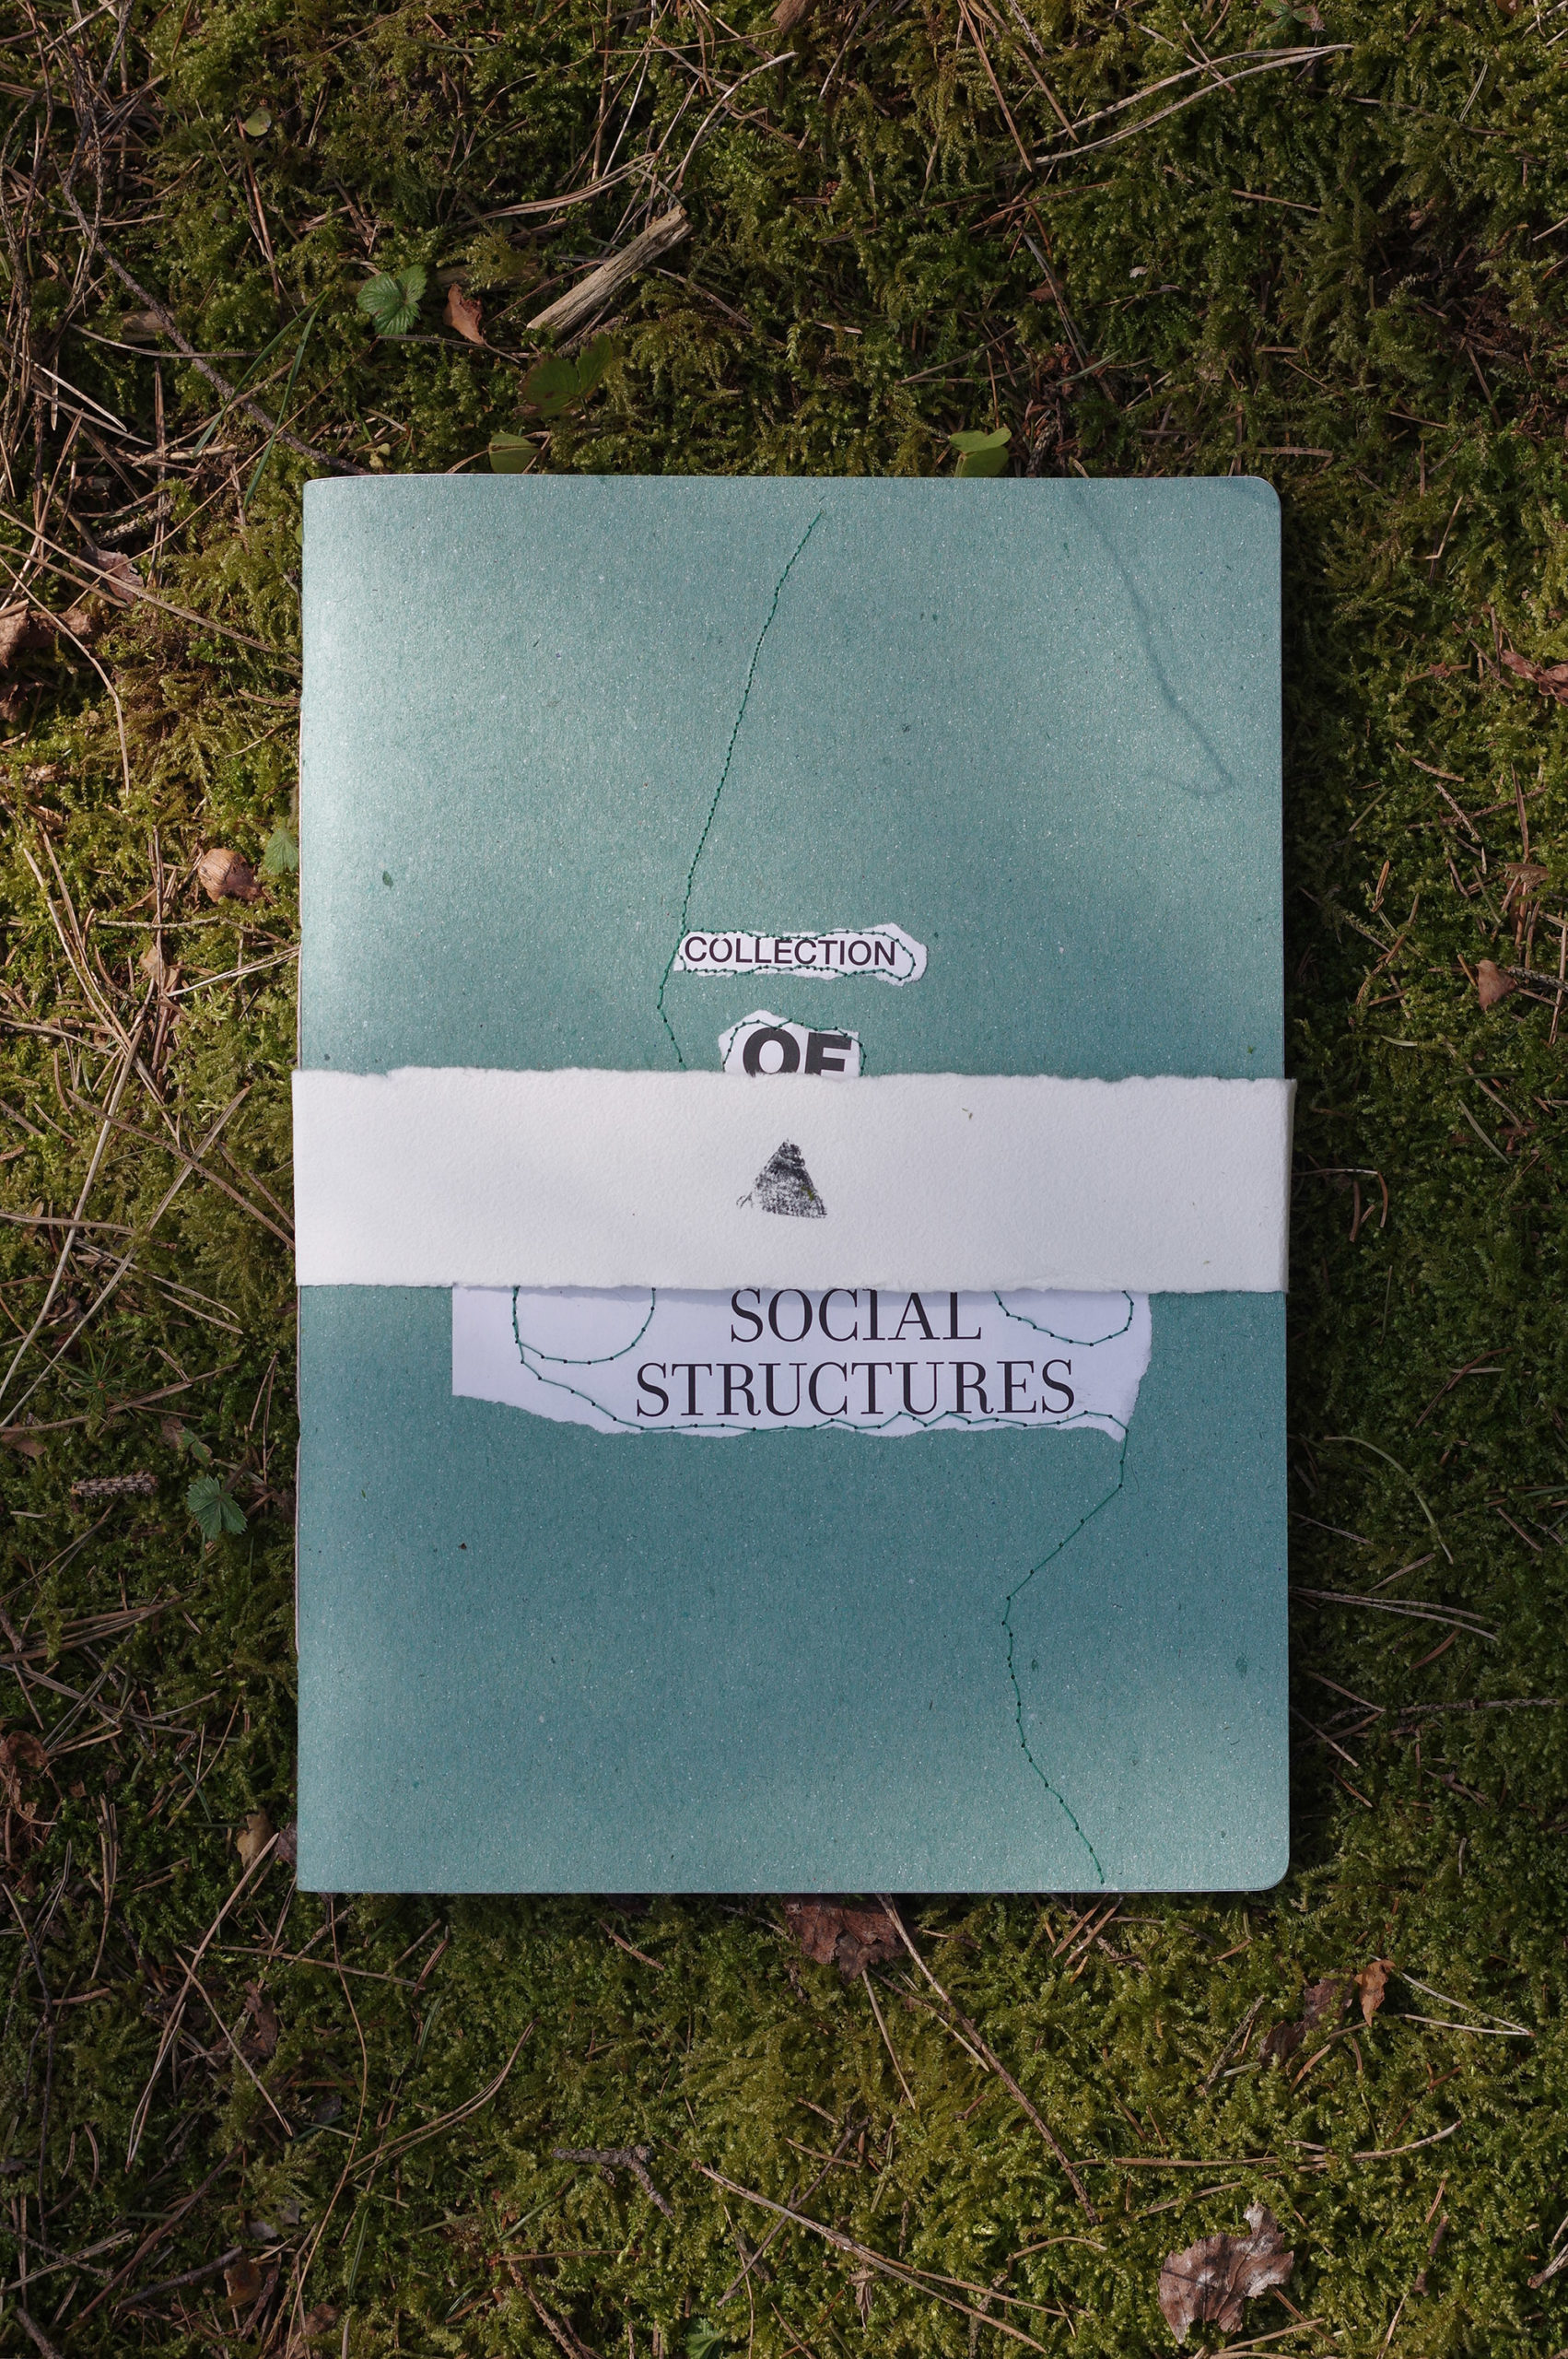 Collage notebooks - sustainability, nature, ideas, culture